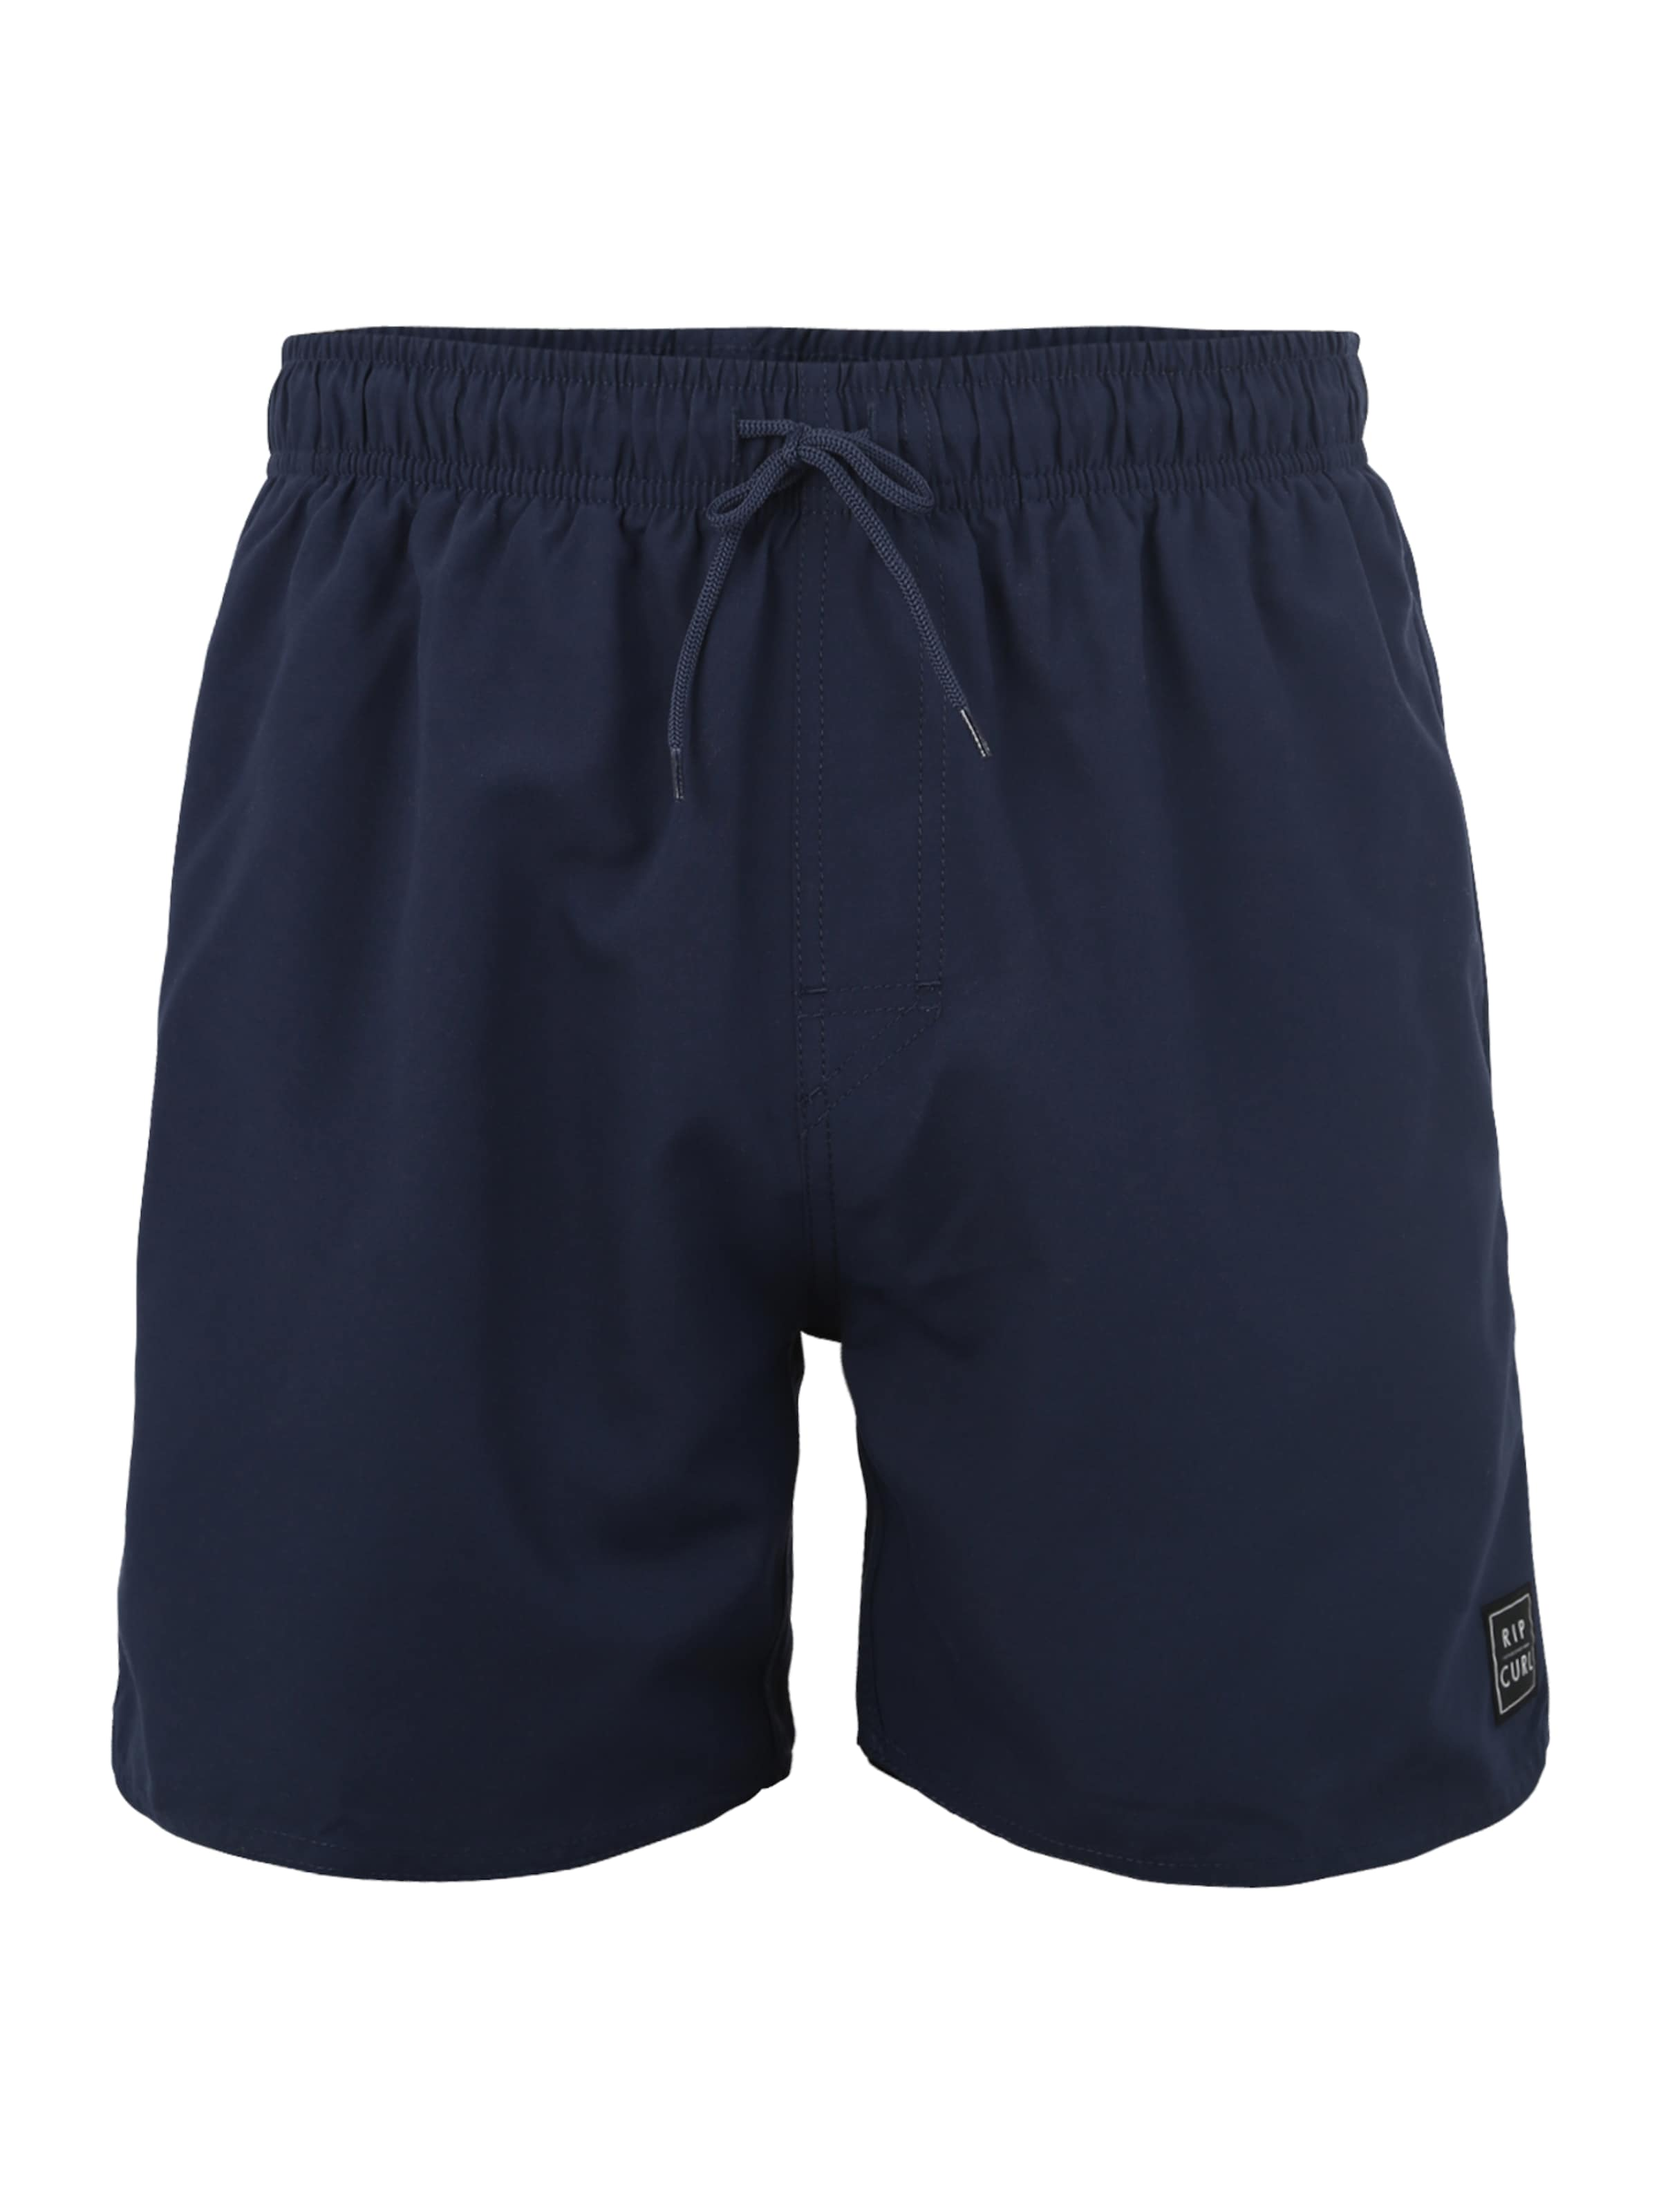 Shorts Fly Indigo De Curl Rip 'volley Out 16''' En Bain 8N0wOPmnvy